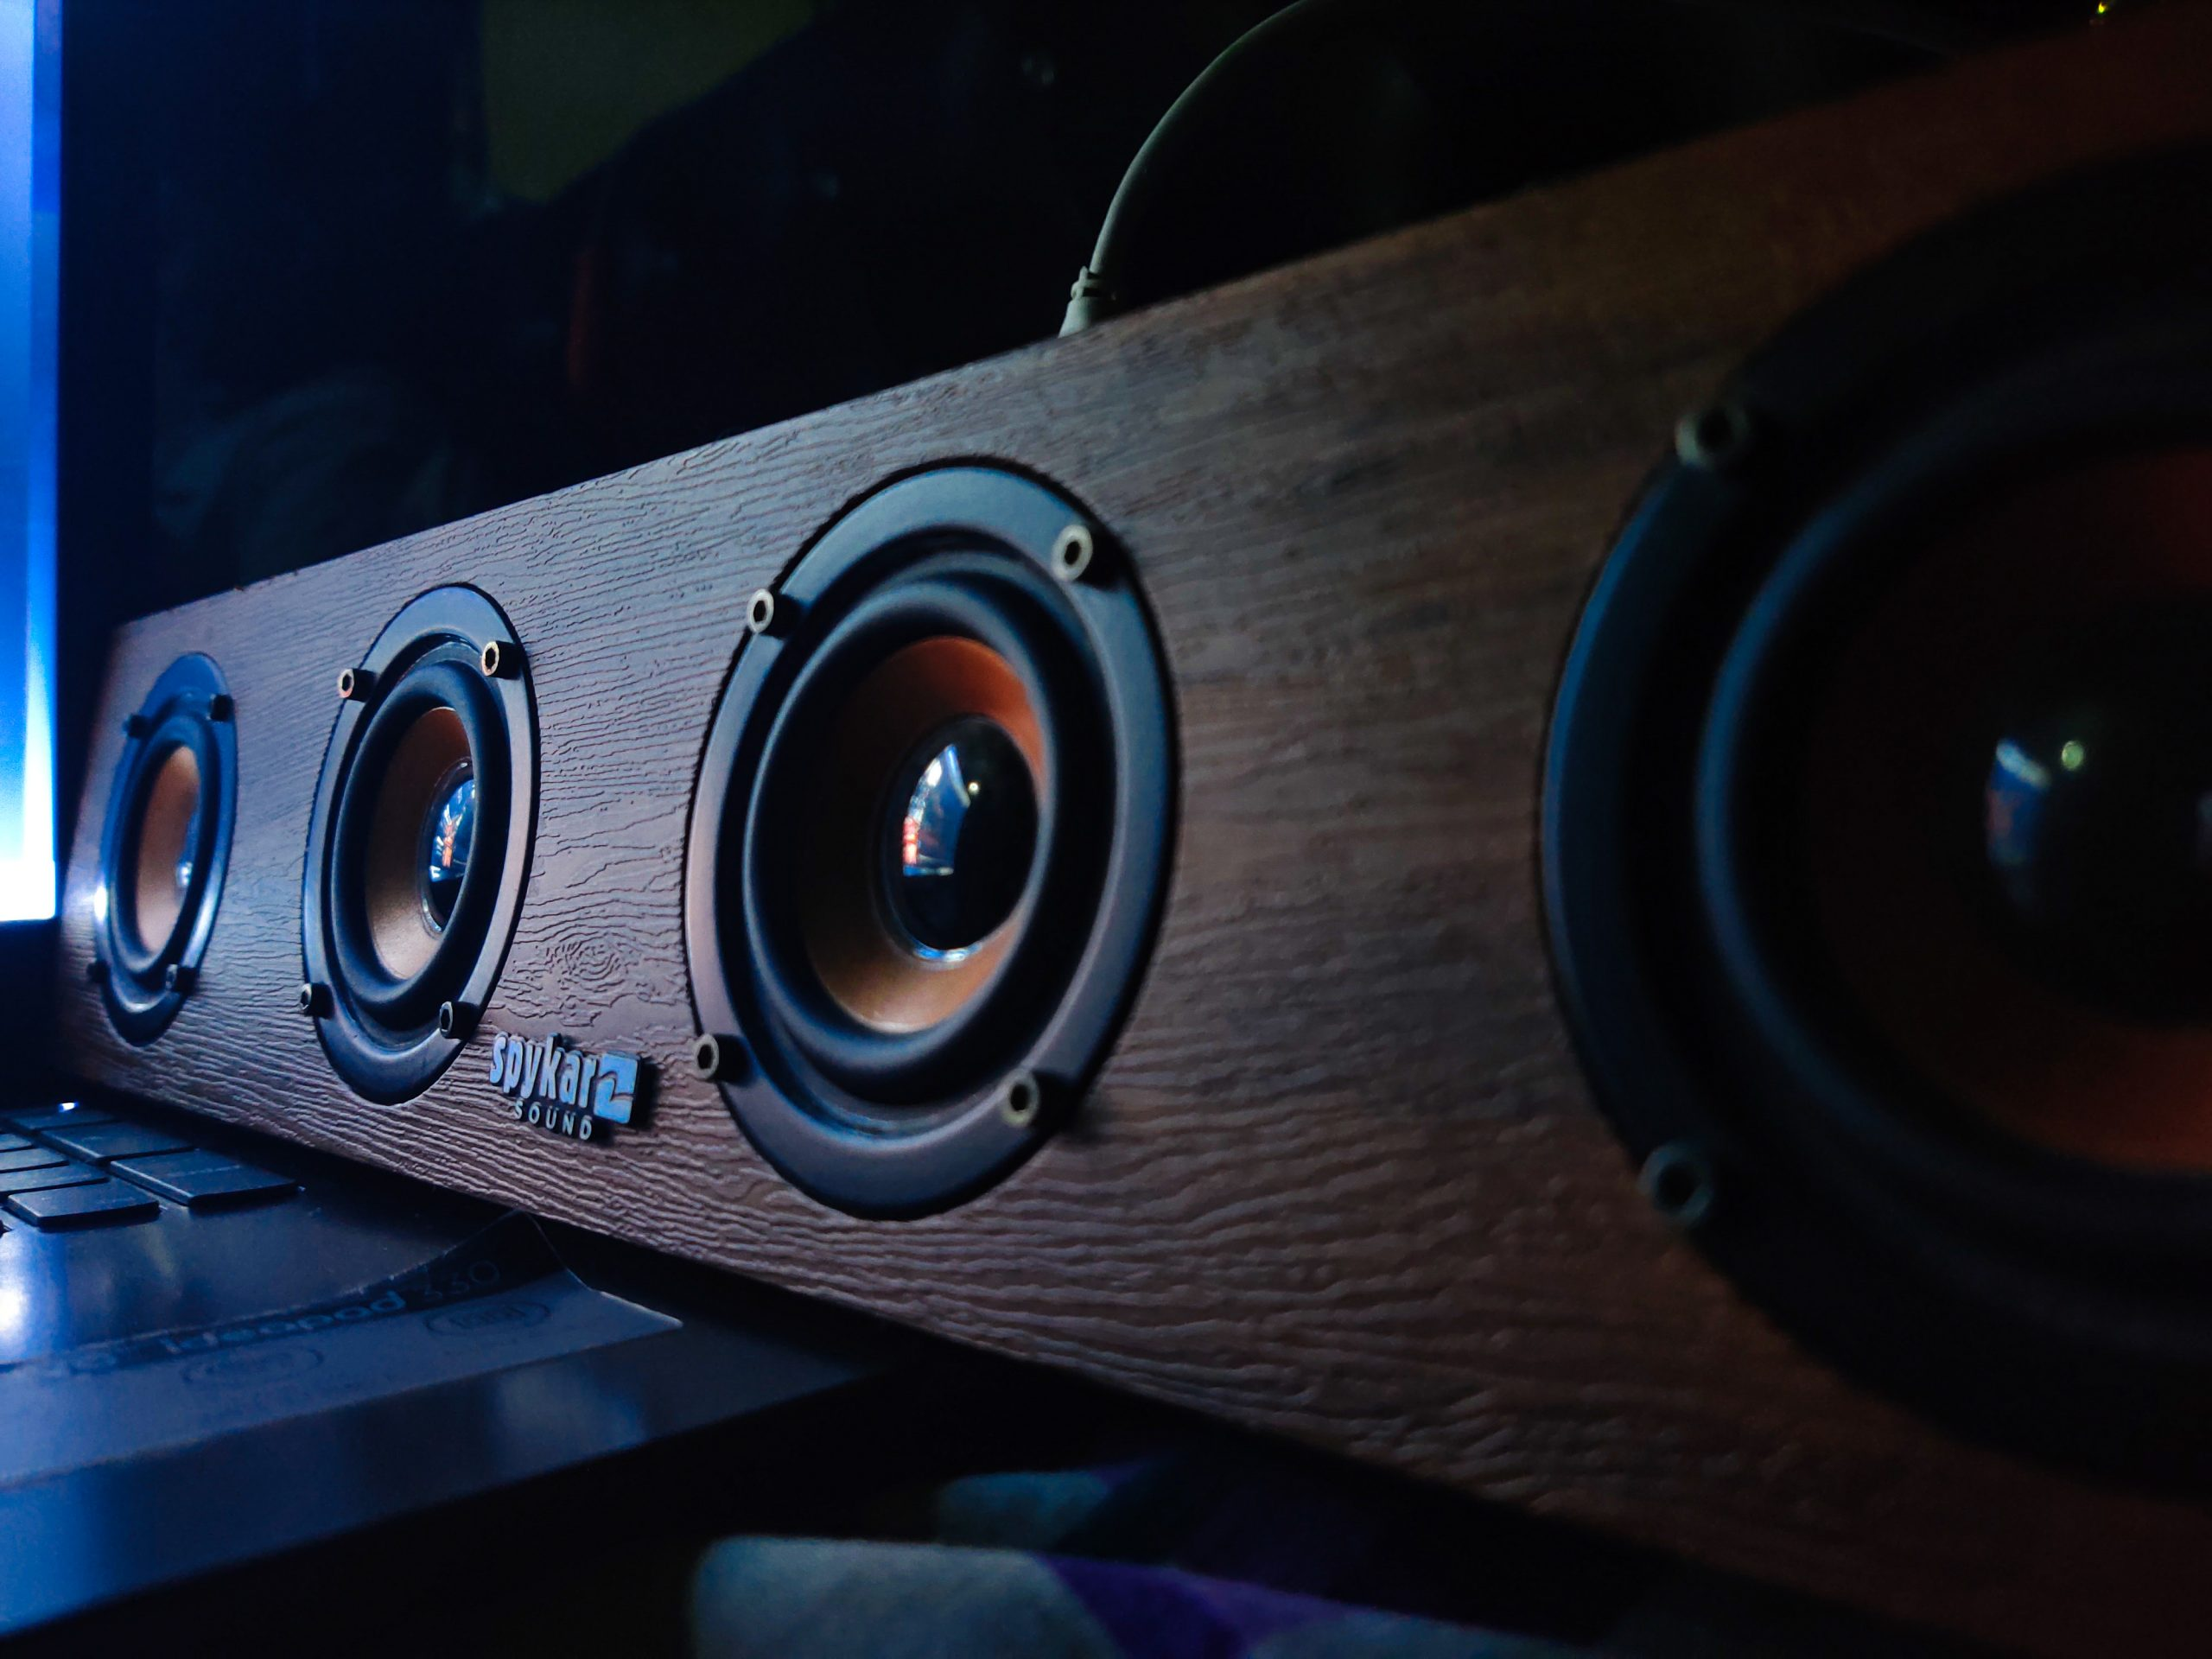 Music from the Loundspeakers